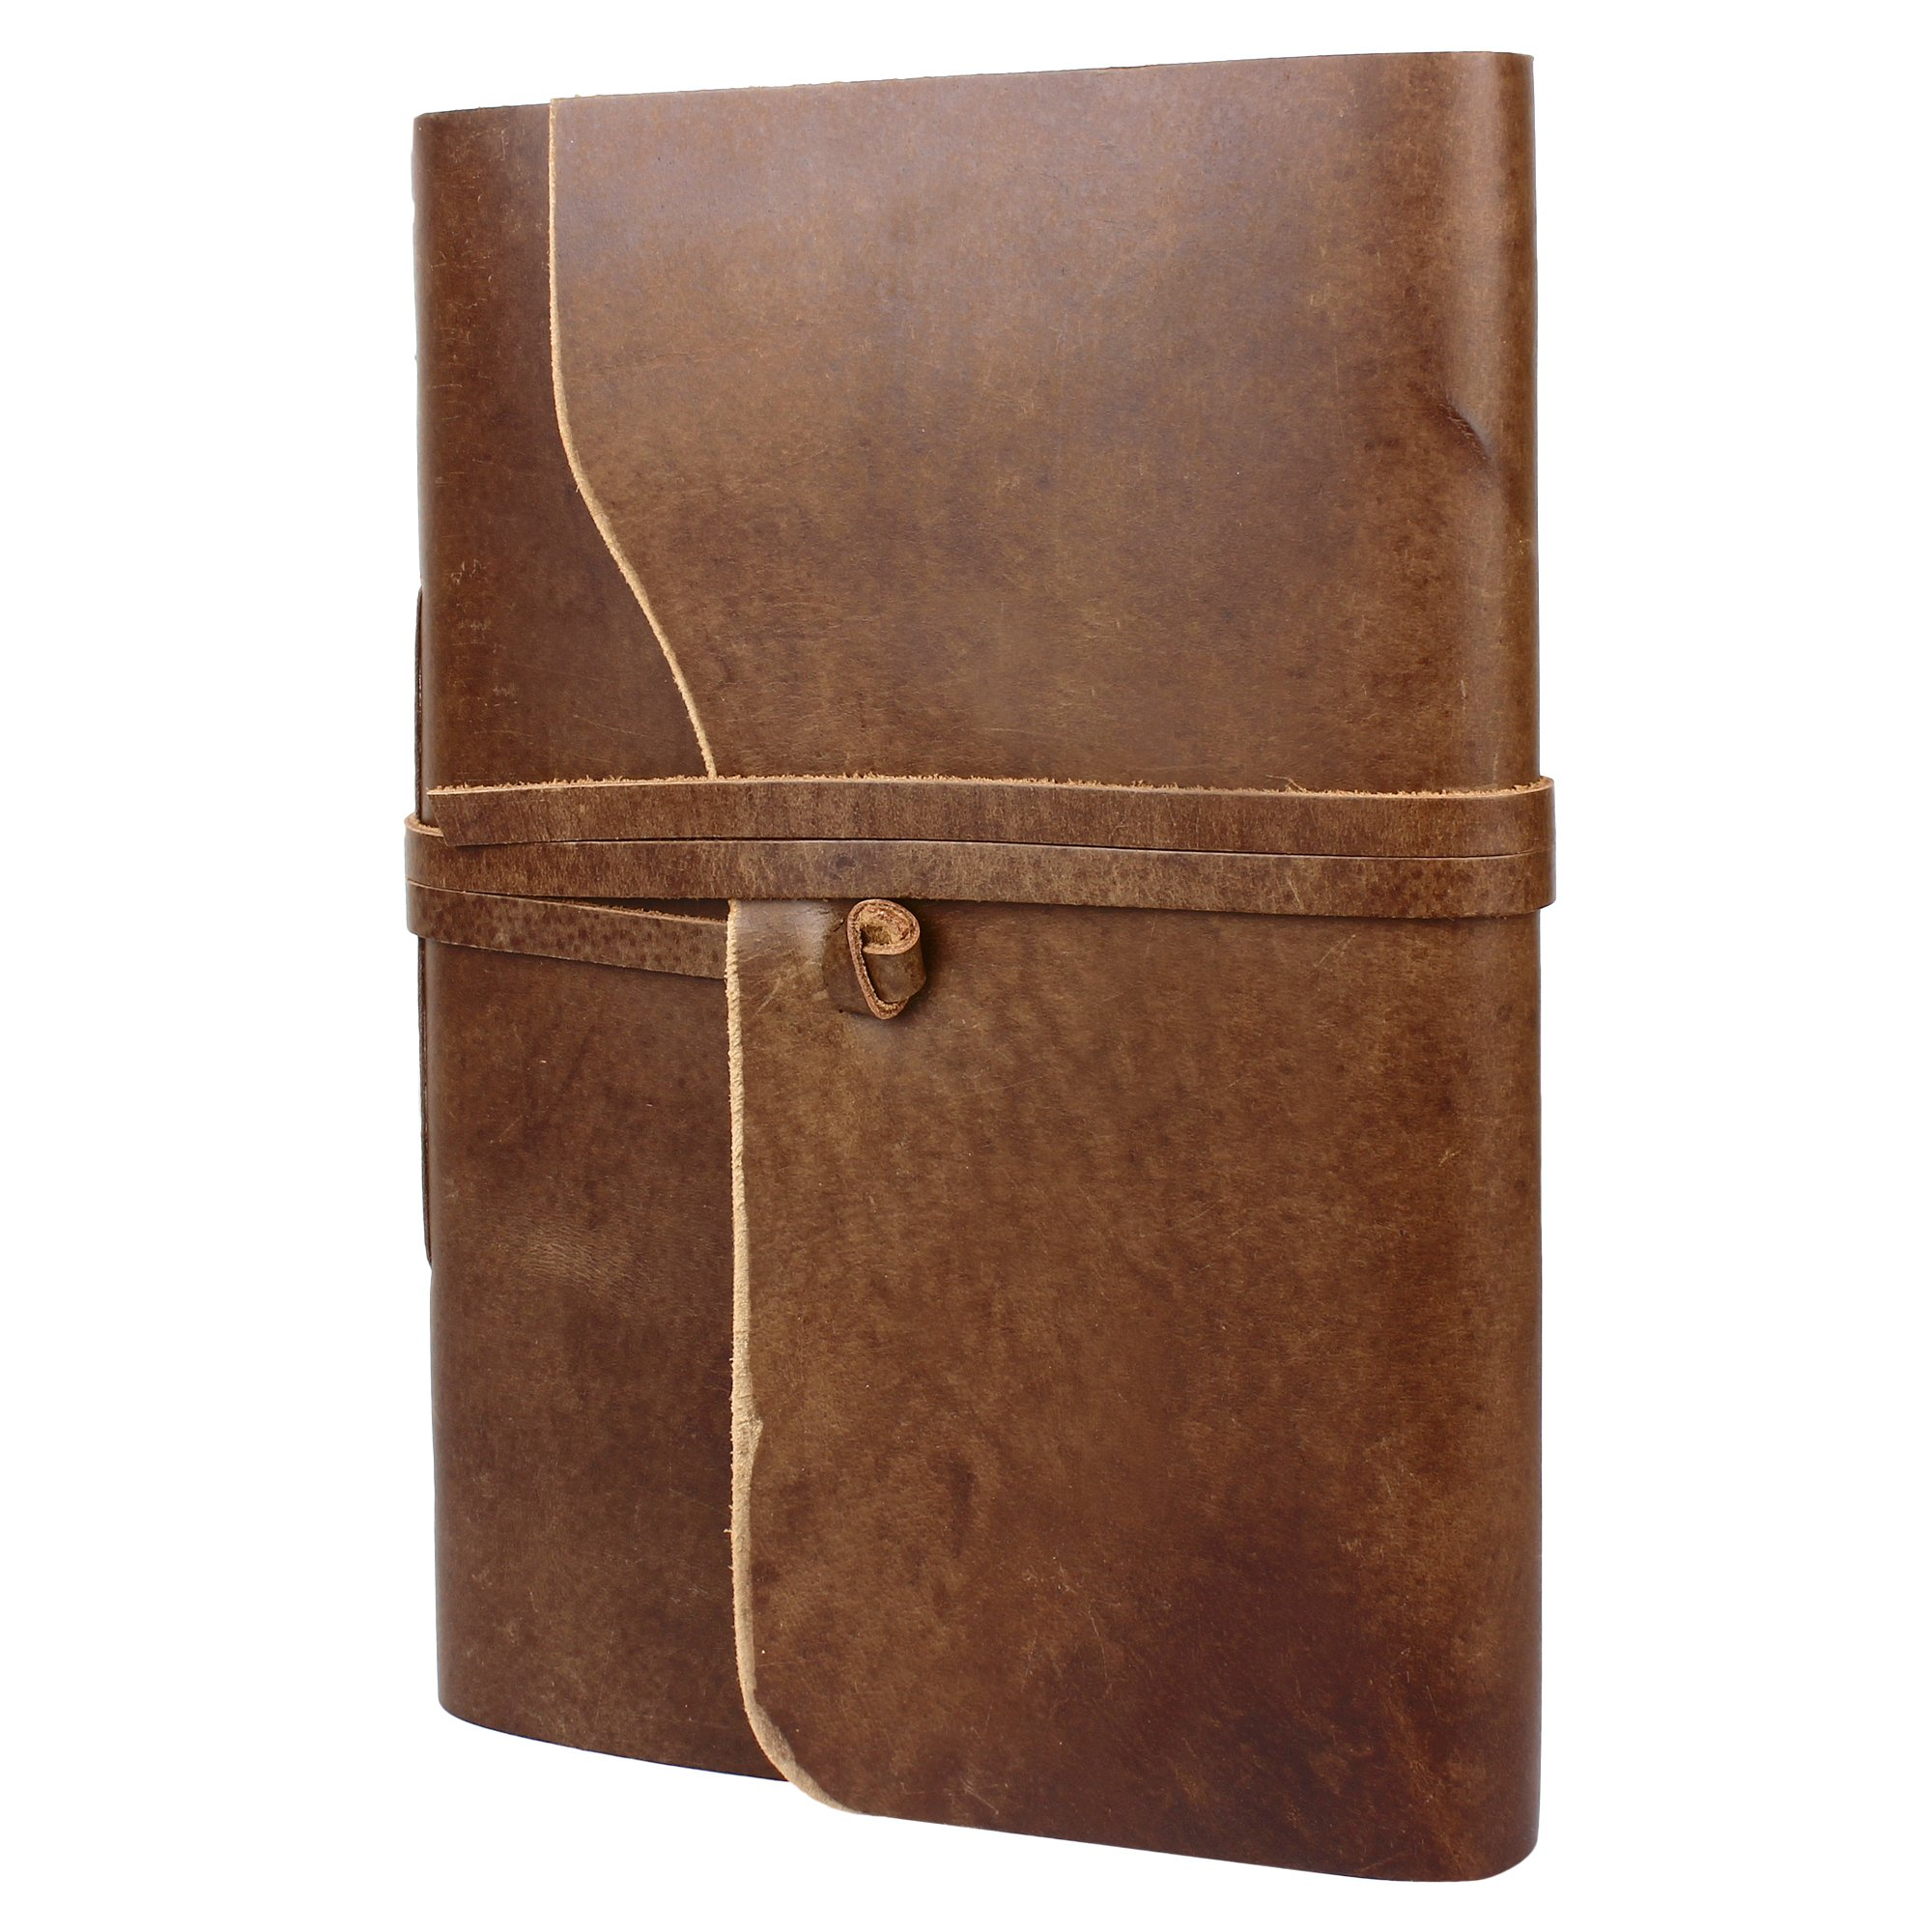 Rustic Town Genuine Leather Photo Album with Gift Box - Scrapbook Style Pages (Large, Brown)